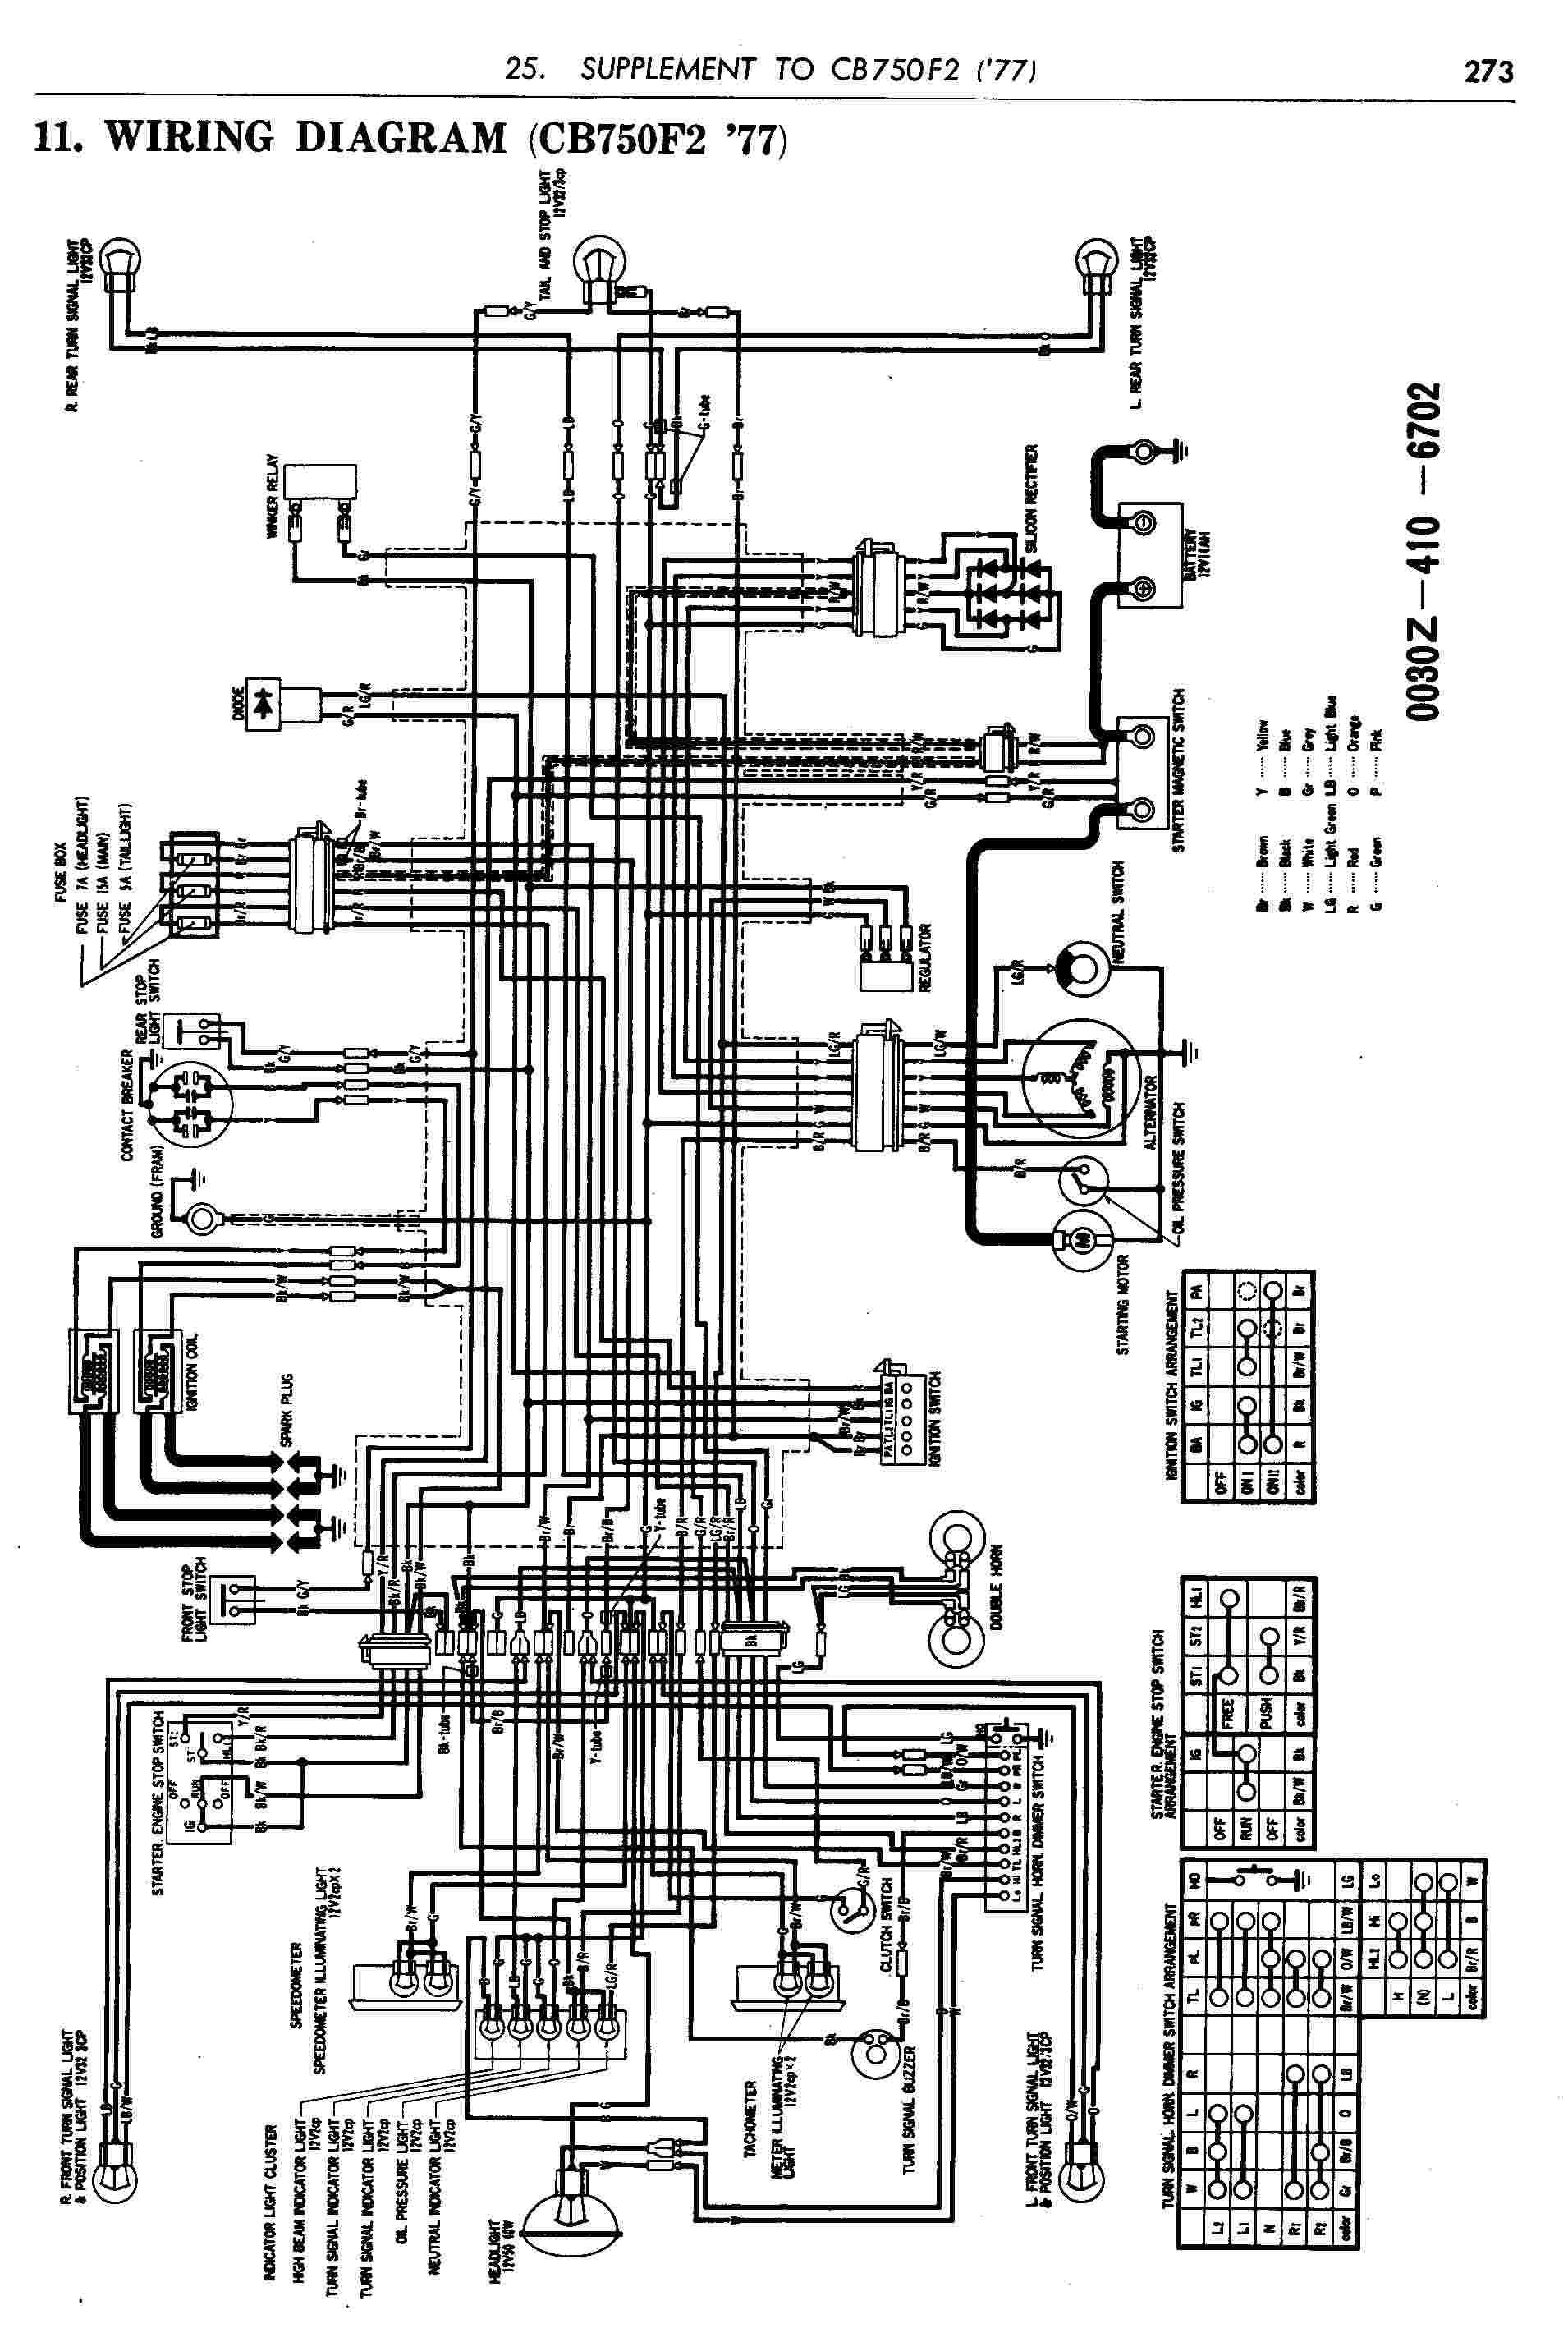 Honda Motorcycle Wiring Diagrams Cb750f2 Electrical, Honda